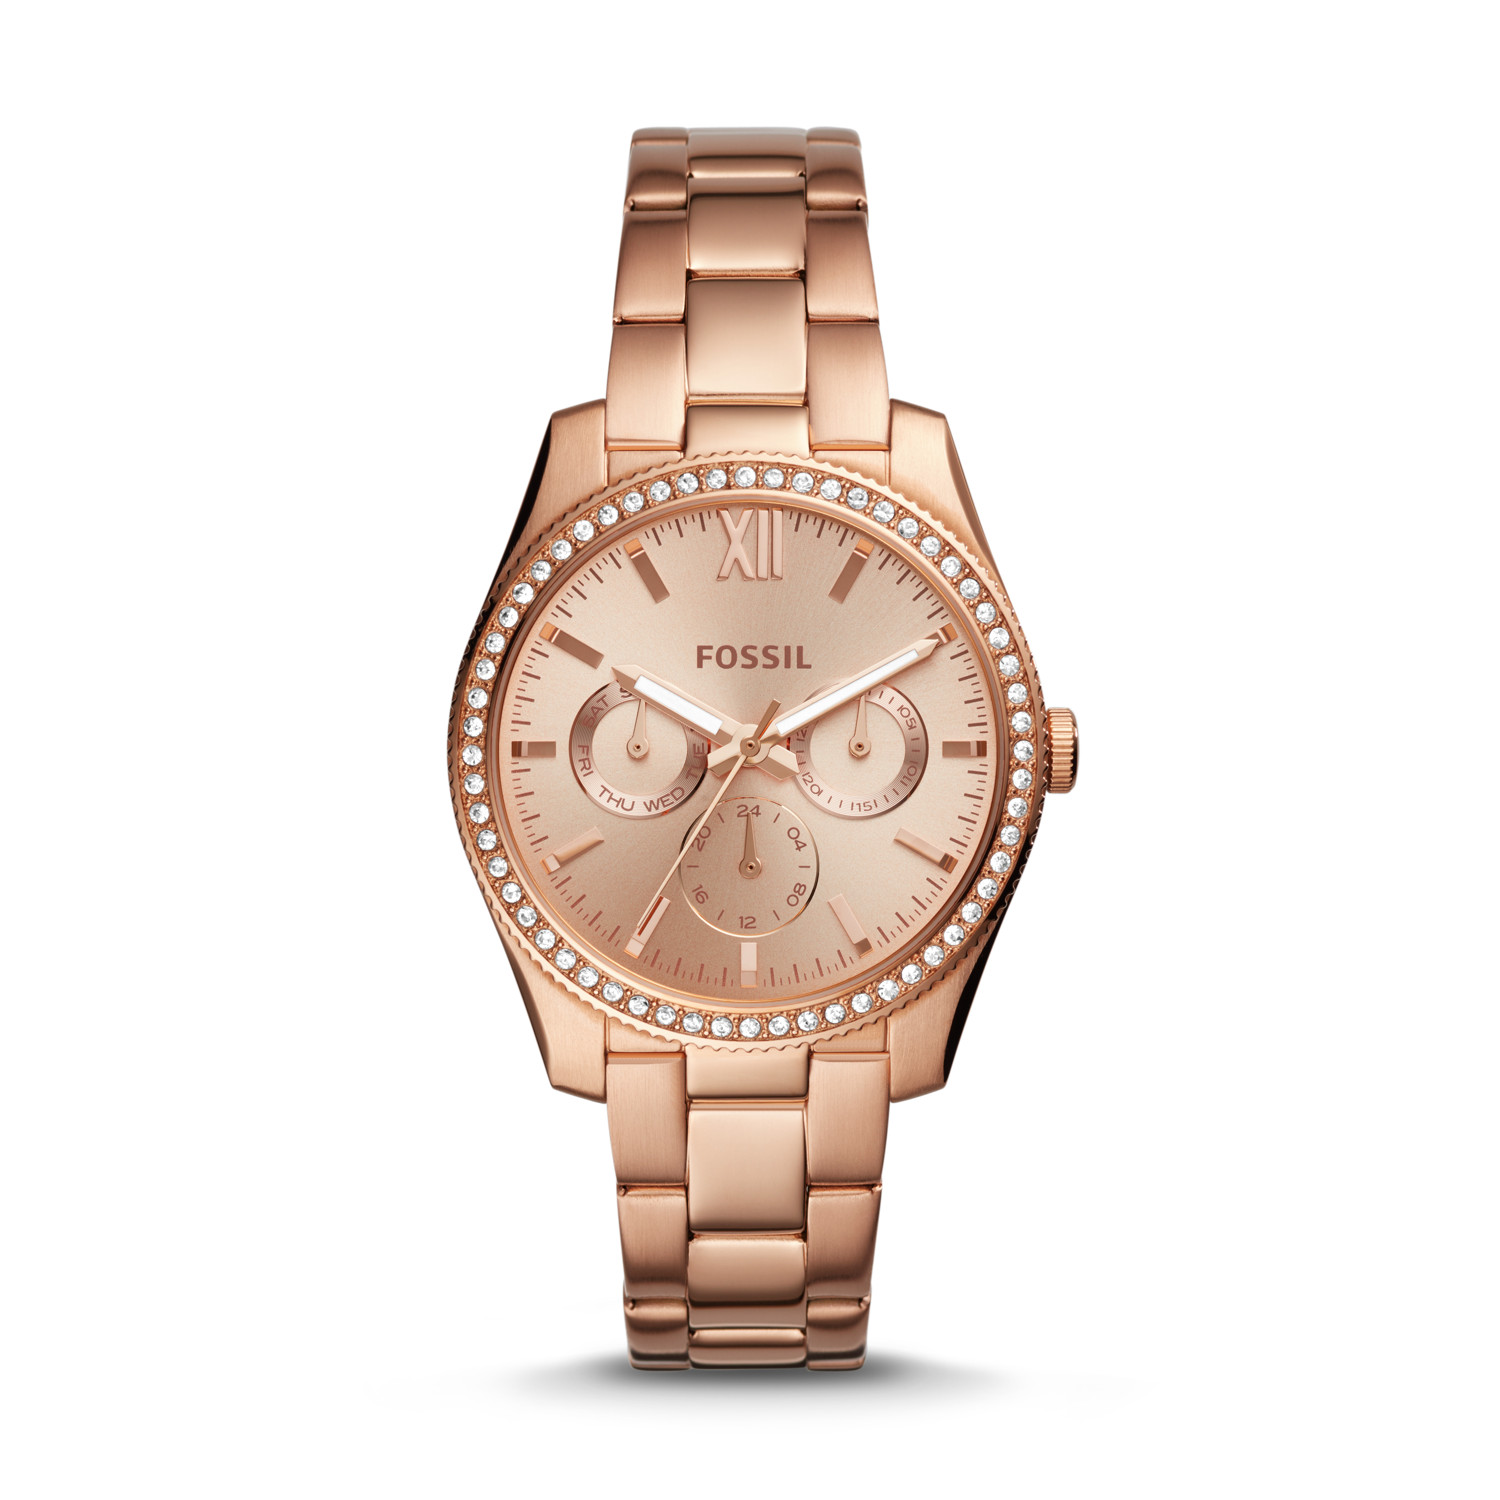 soho watch rose gold dkny ladies mesh dial watches